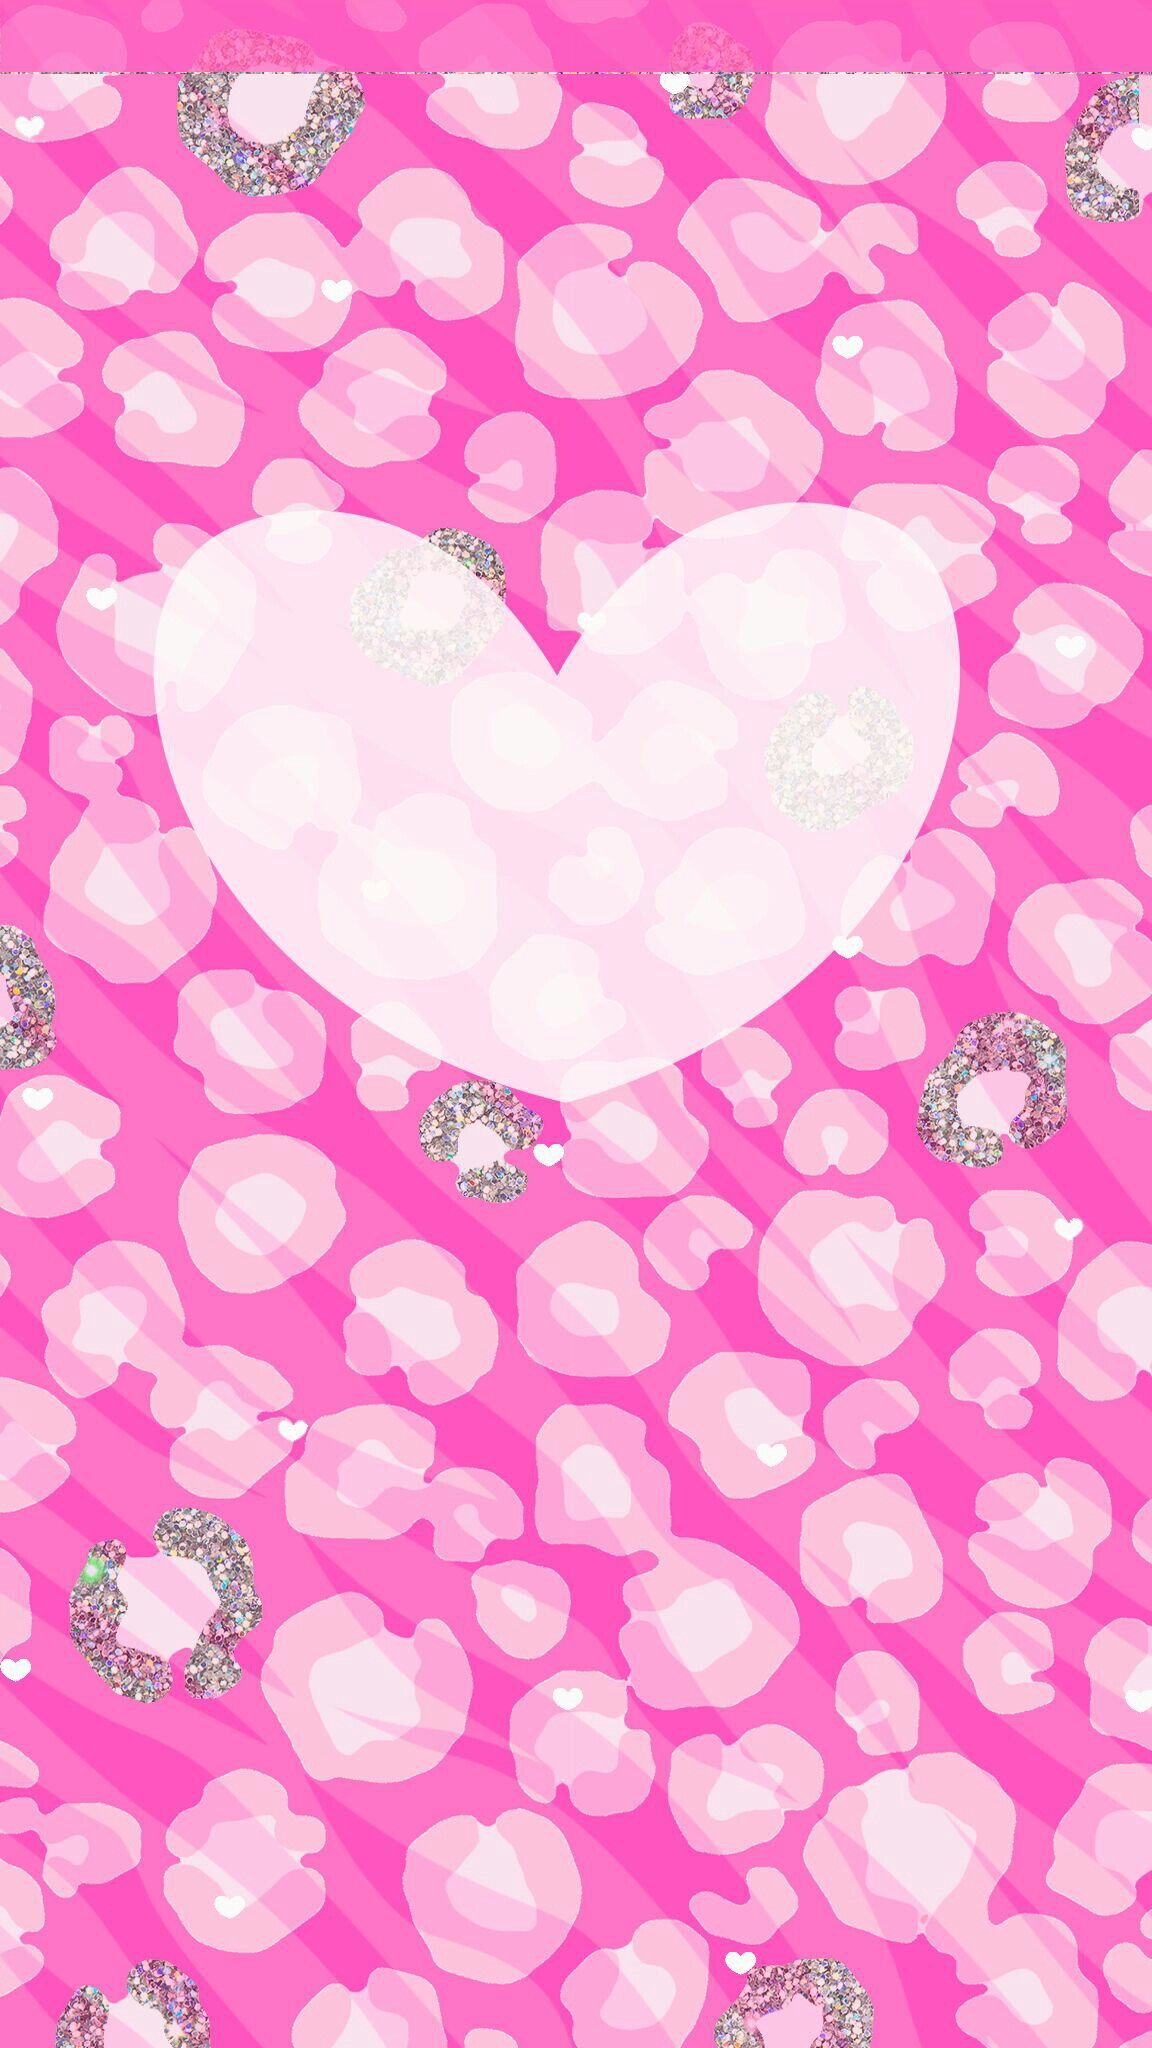 Pin by Patrice Aka Pepper on hello Kitty wallpapers